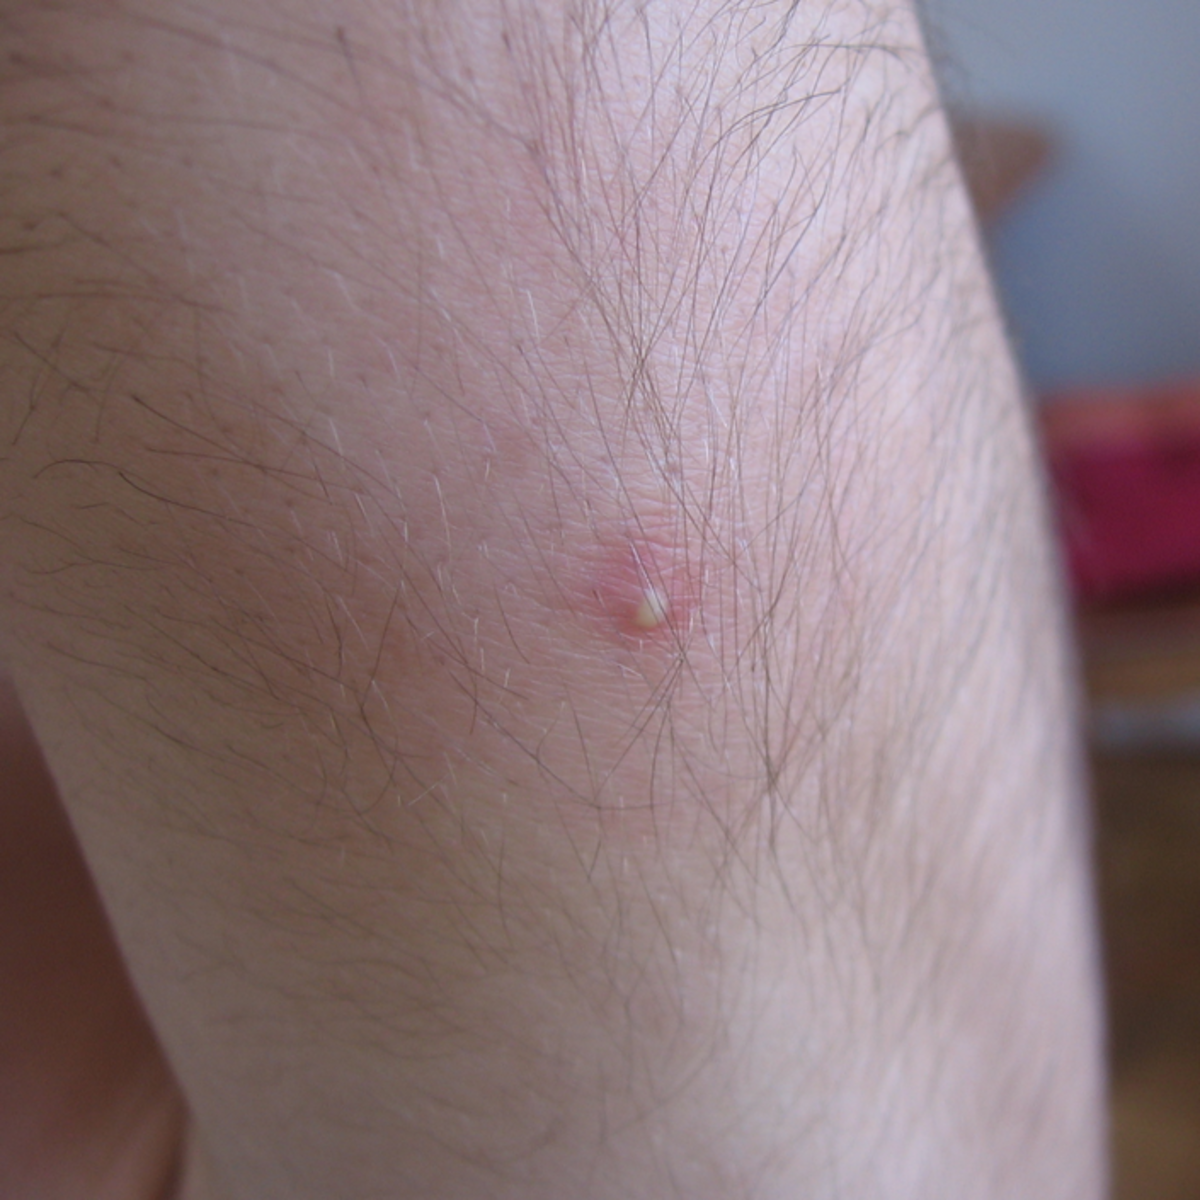 Acne vulgaris, in this case on the arm, can also appear on the thighs or buttocks.